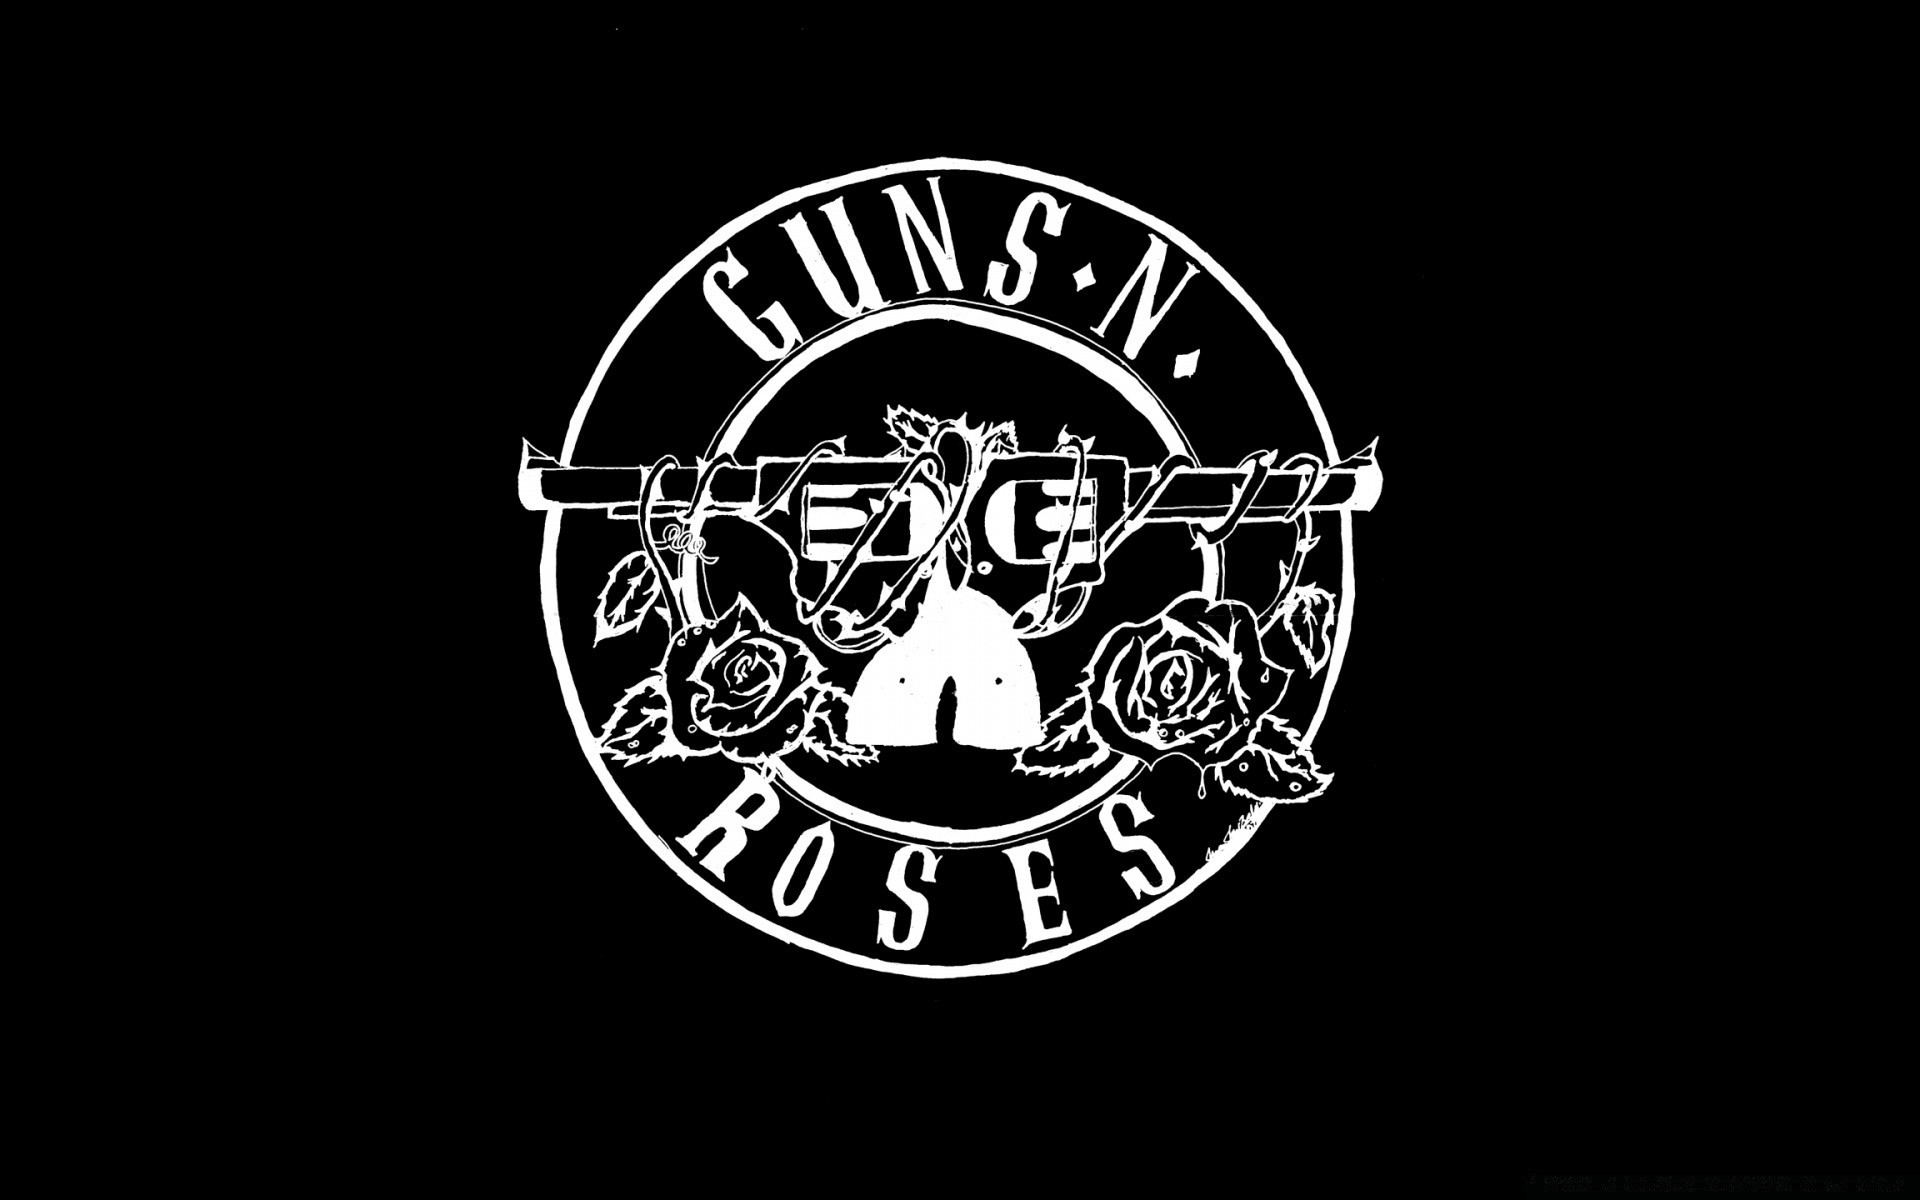 guns 'n' roses logo (hd). iphone wallpapers for free.